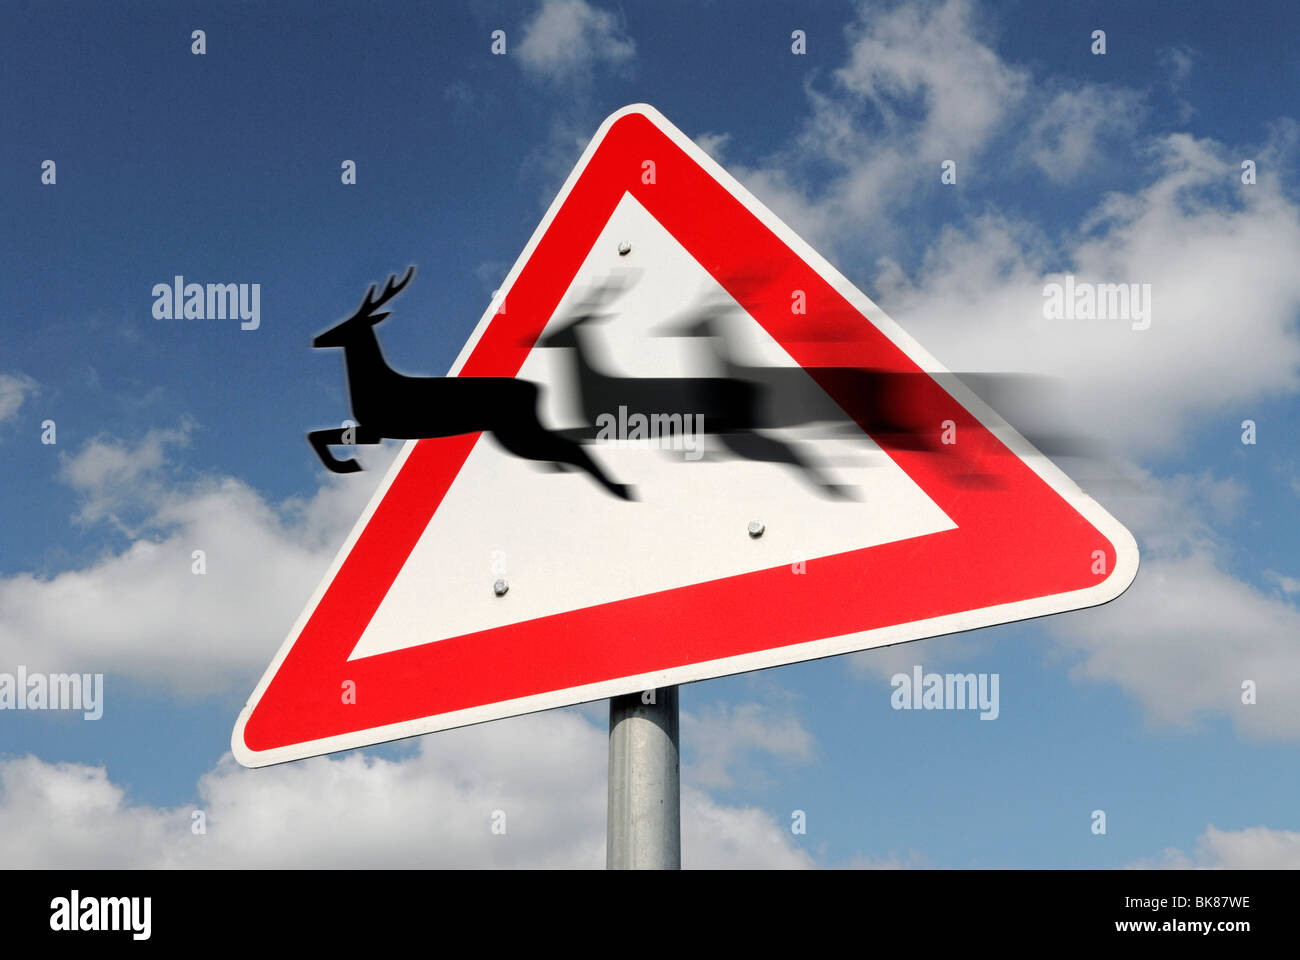 Traffic sign, deer crossing, montage with movement - Stock Image